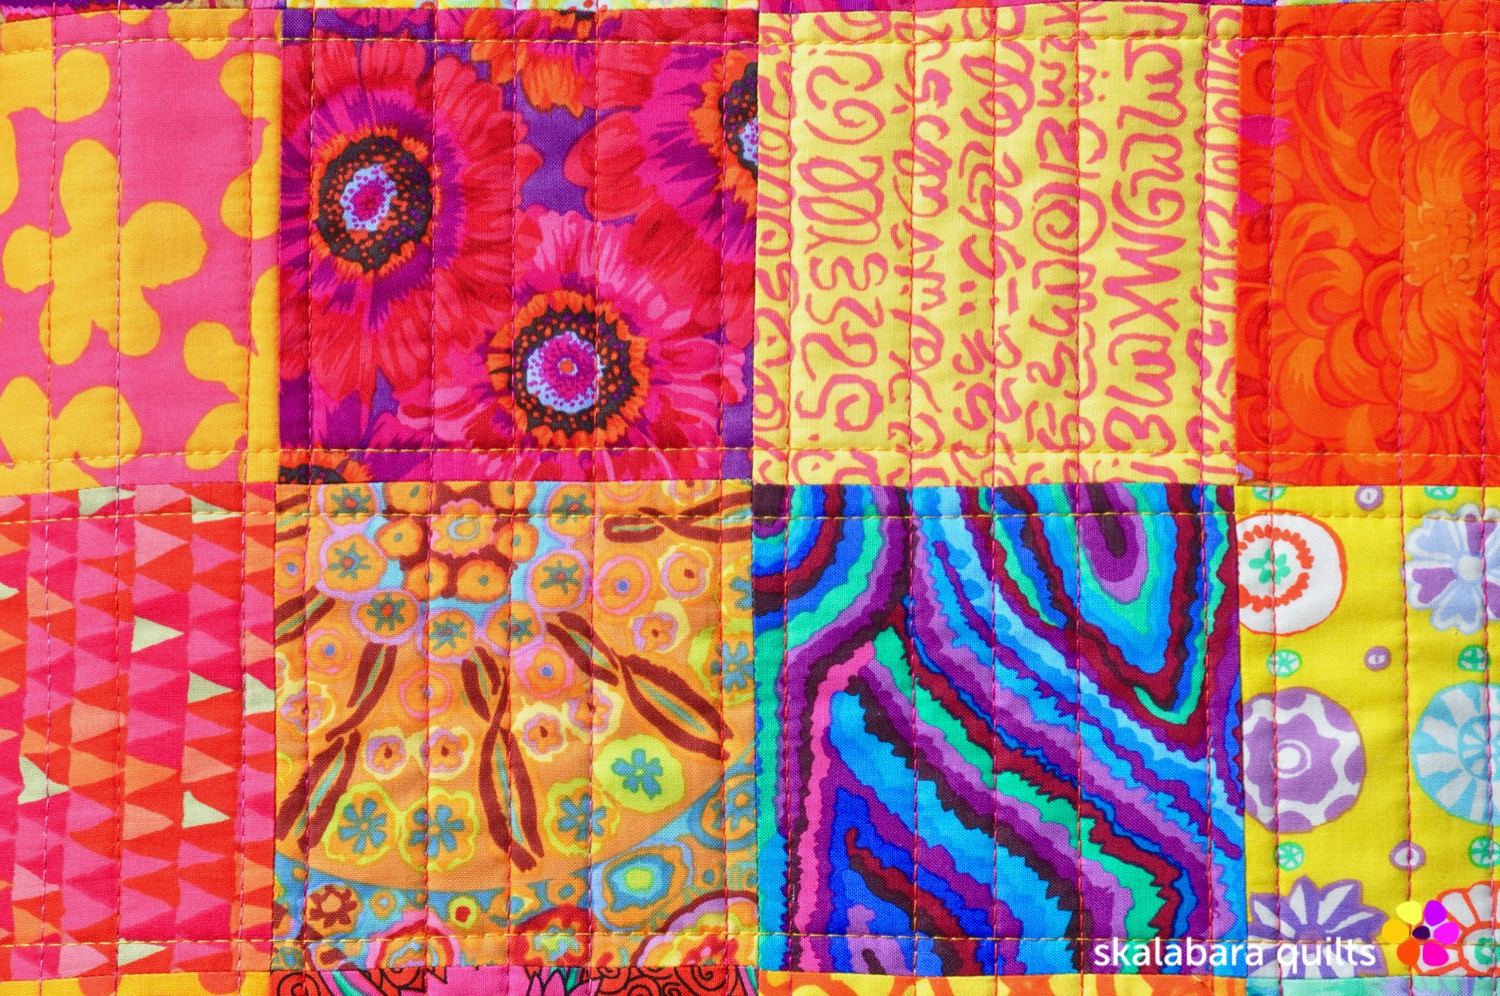 sewing machine cover detail 1 - skalabara quilts